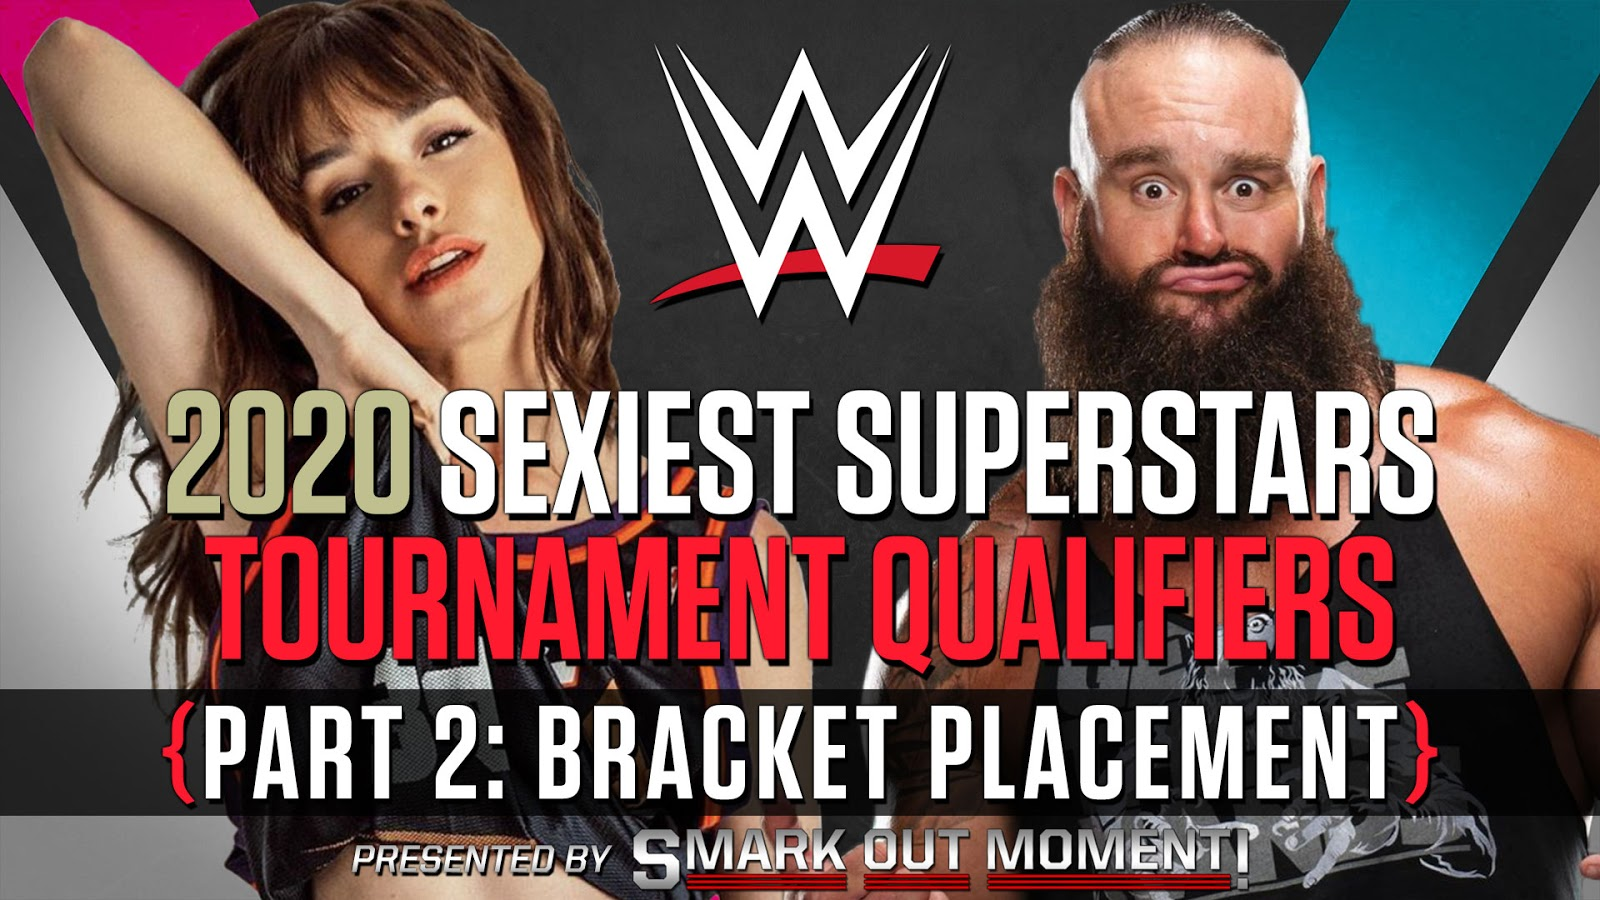 2020 Hottest Wrestlers in Sports Entertainment Athletes Tournament